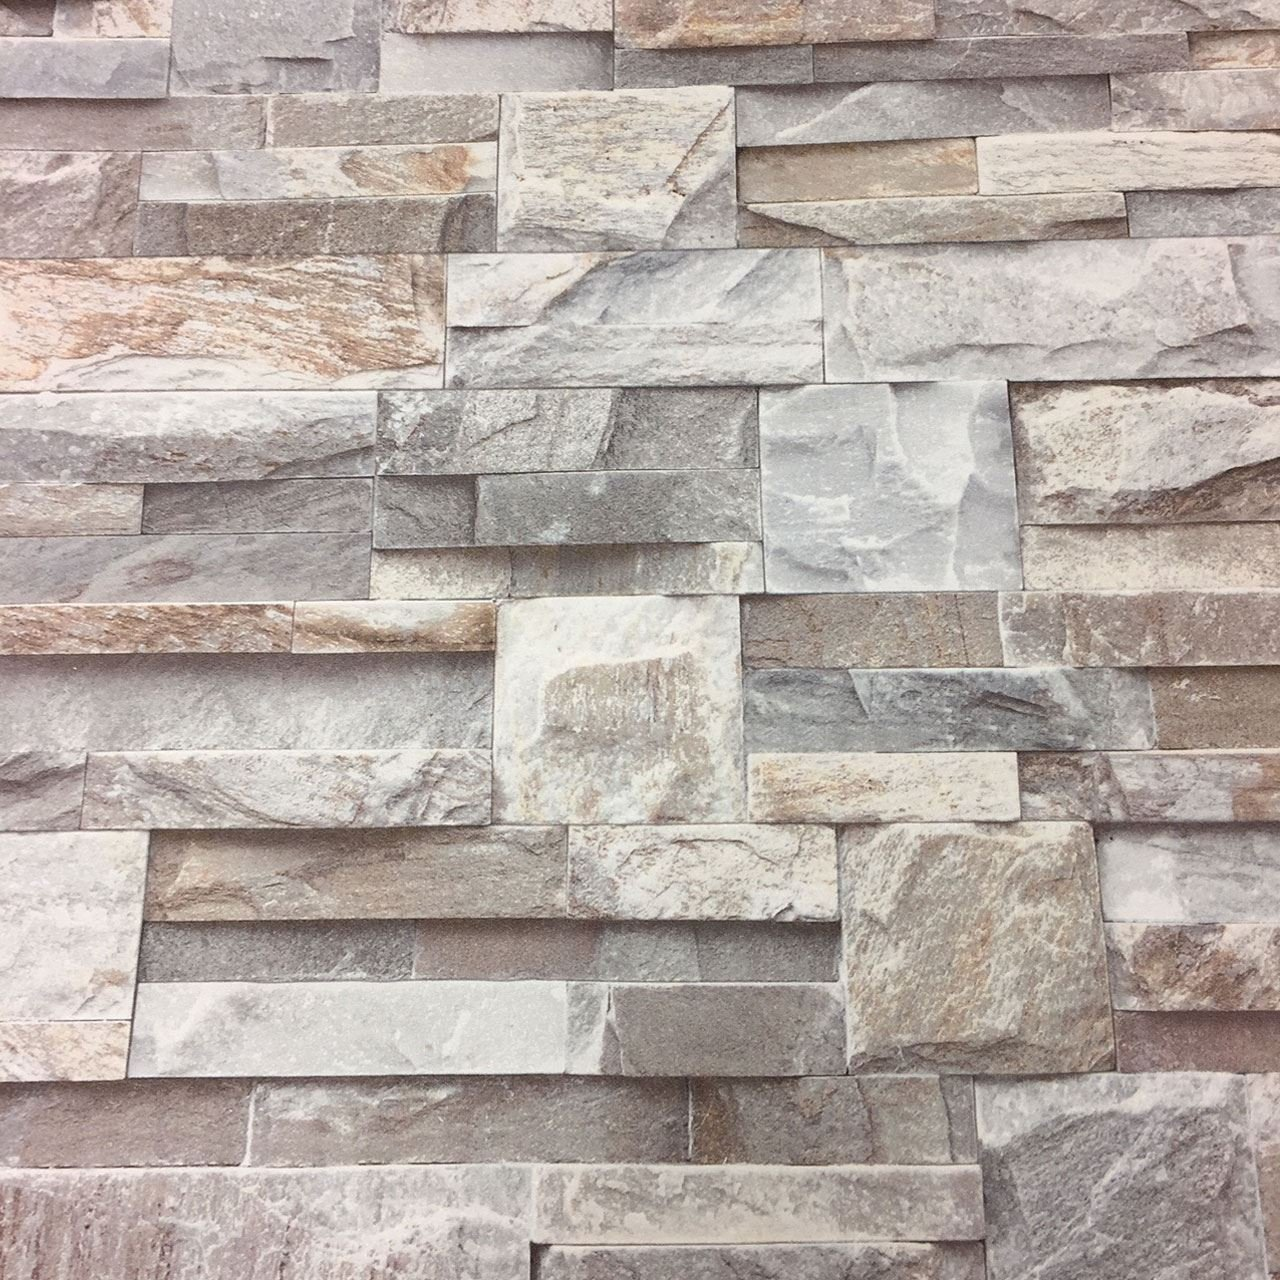 3d Grey Slate Brick Stone Effect Wallpaper Luxury Textured Non Woven Vinyl From Y L Buy Online In Bosnia And Herzegovina At Bosnia Desertcart Com Productid 139390593